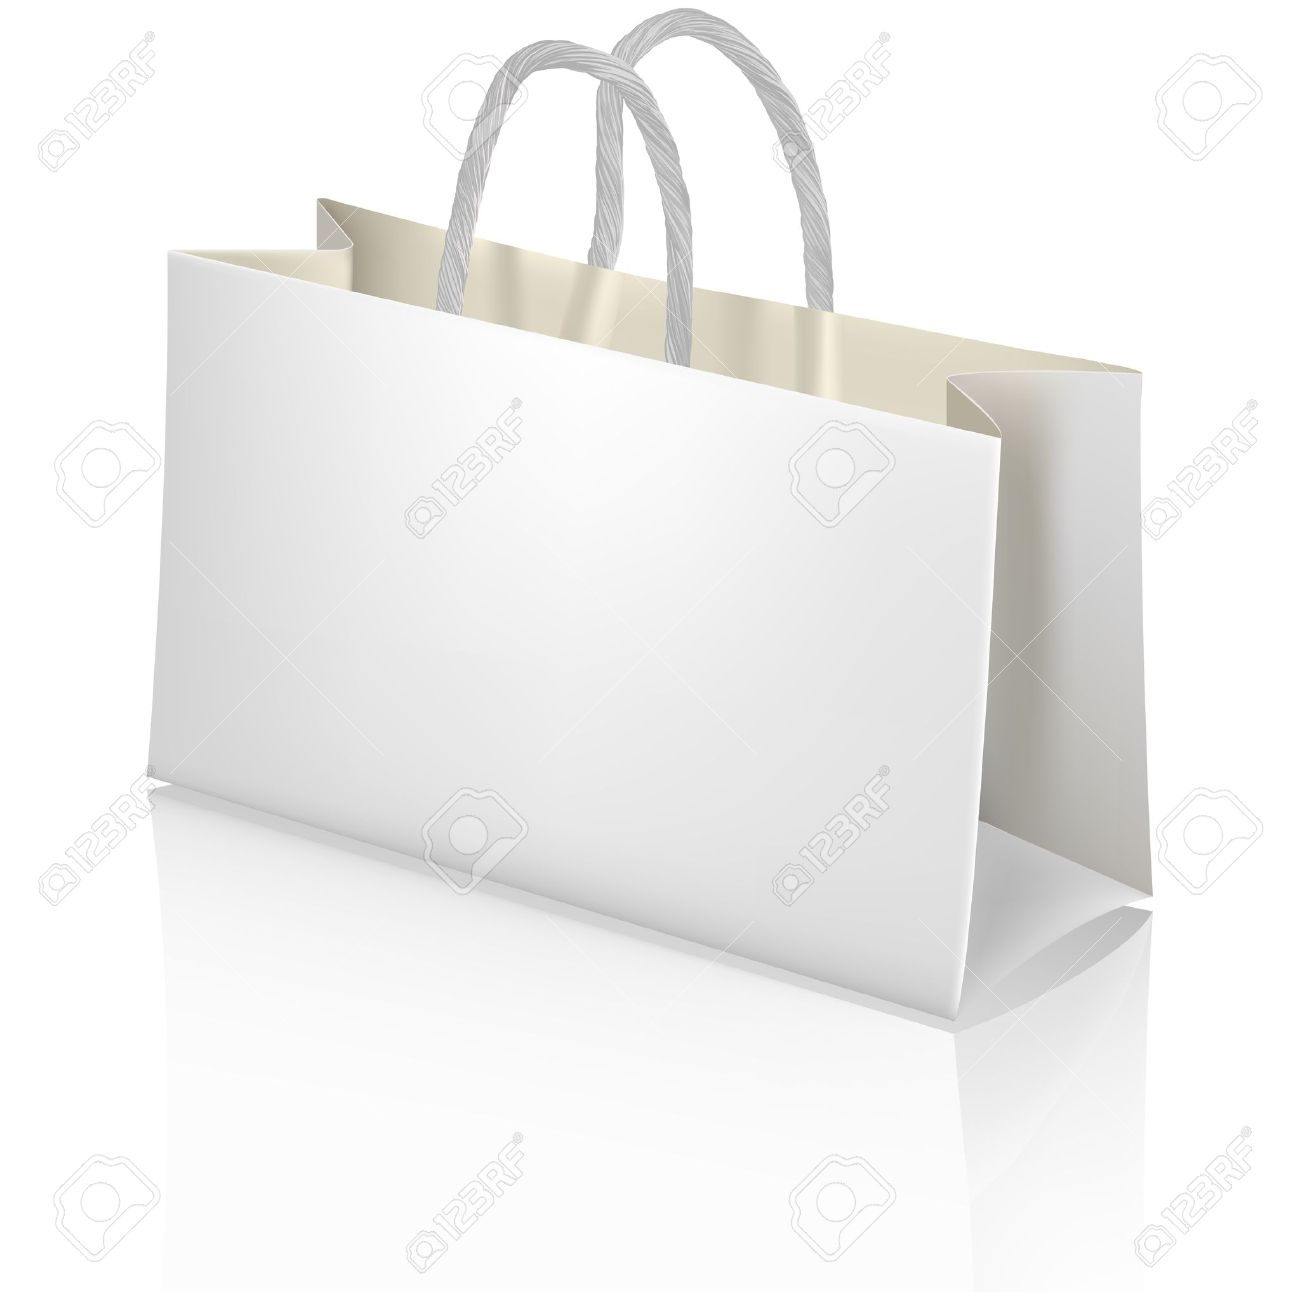 White Paper Shopping Bag Designer Template Royalty Free Cliparts ...